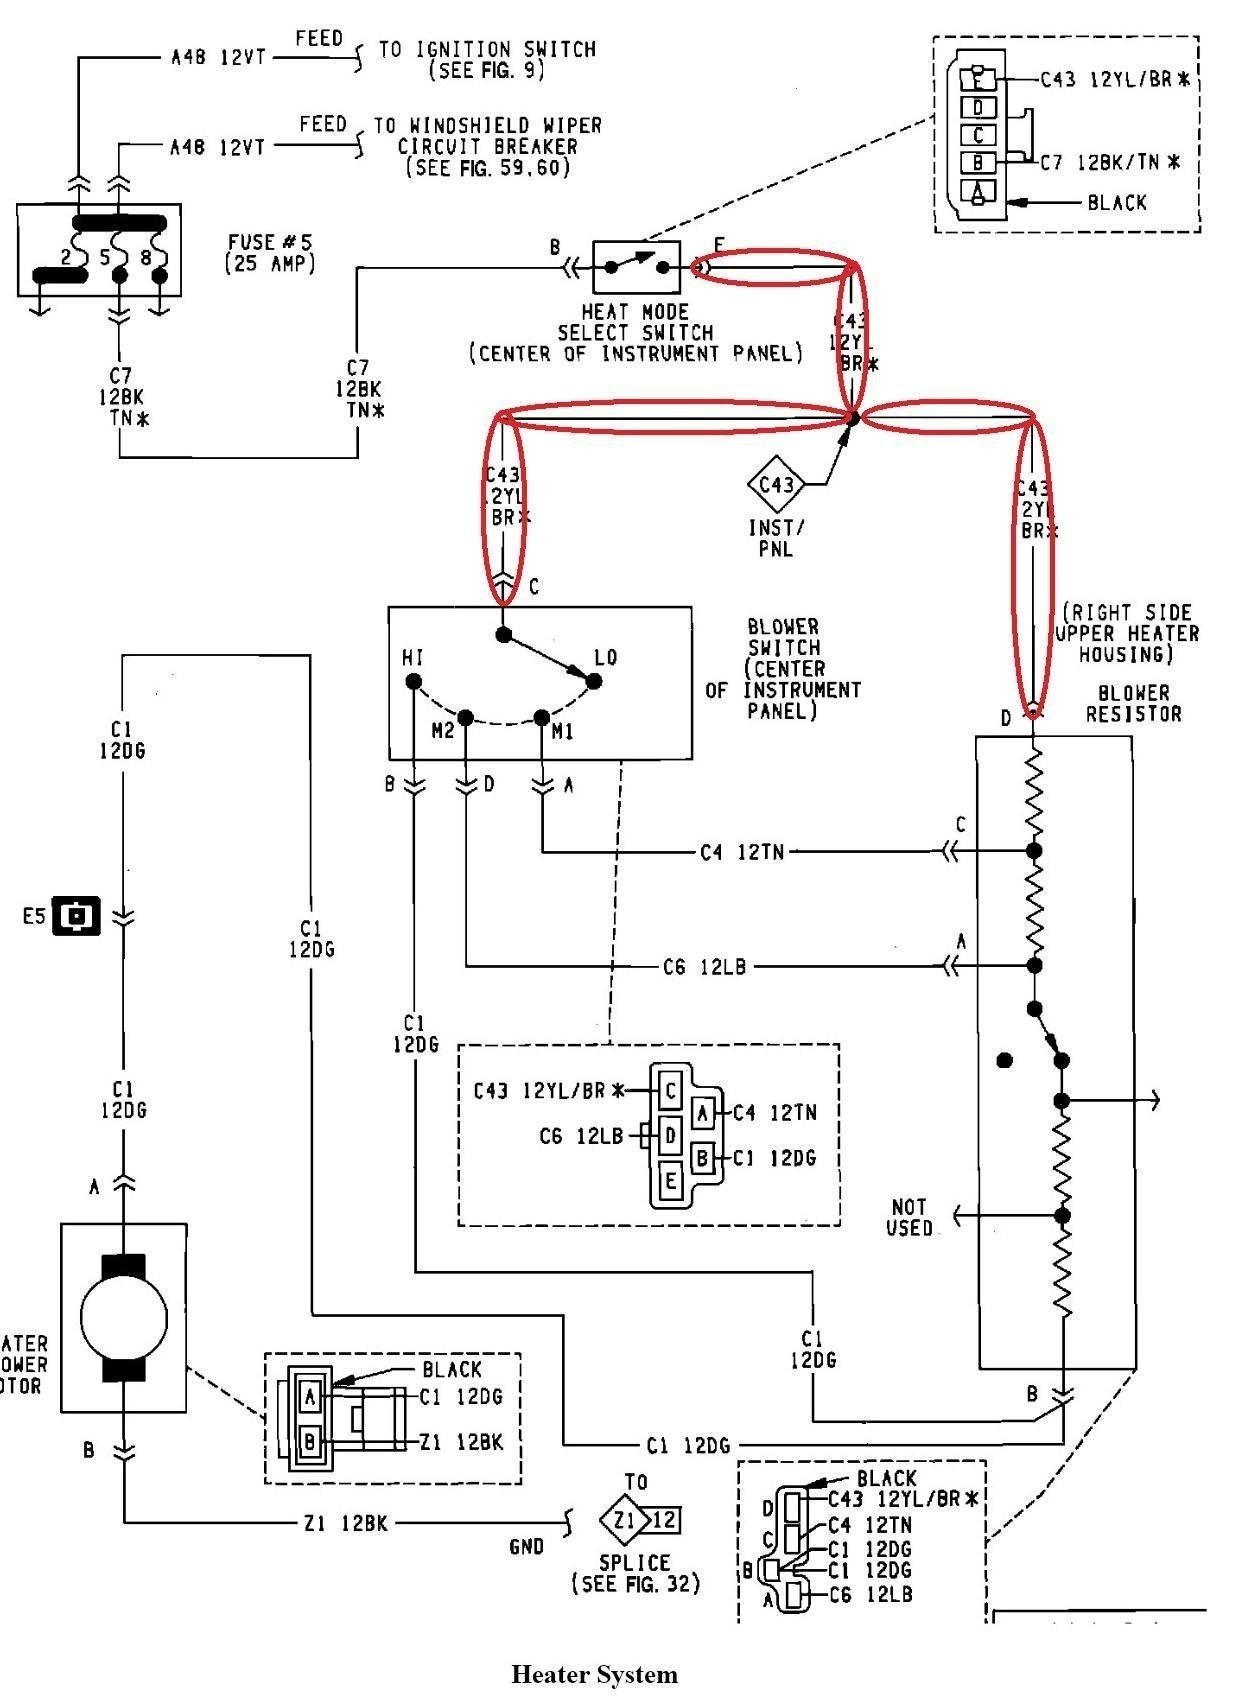 Wiring Diagram For Club Car Lights Diagram Diagramtemplate Diagramsample Carrito De Golf Mitsubishi Diamante Carrito